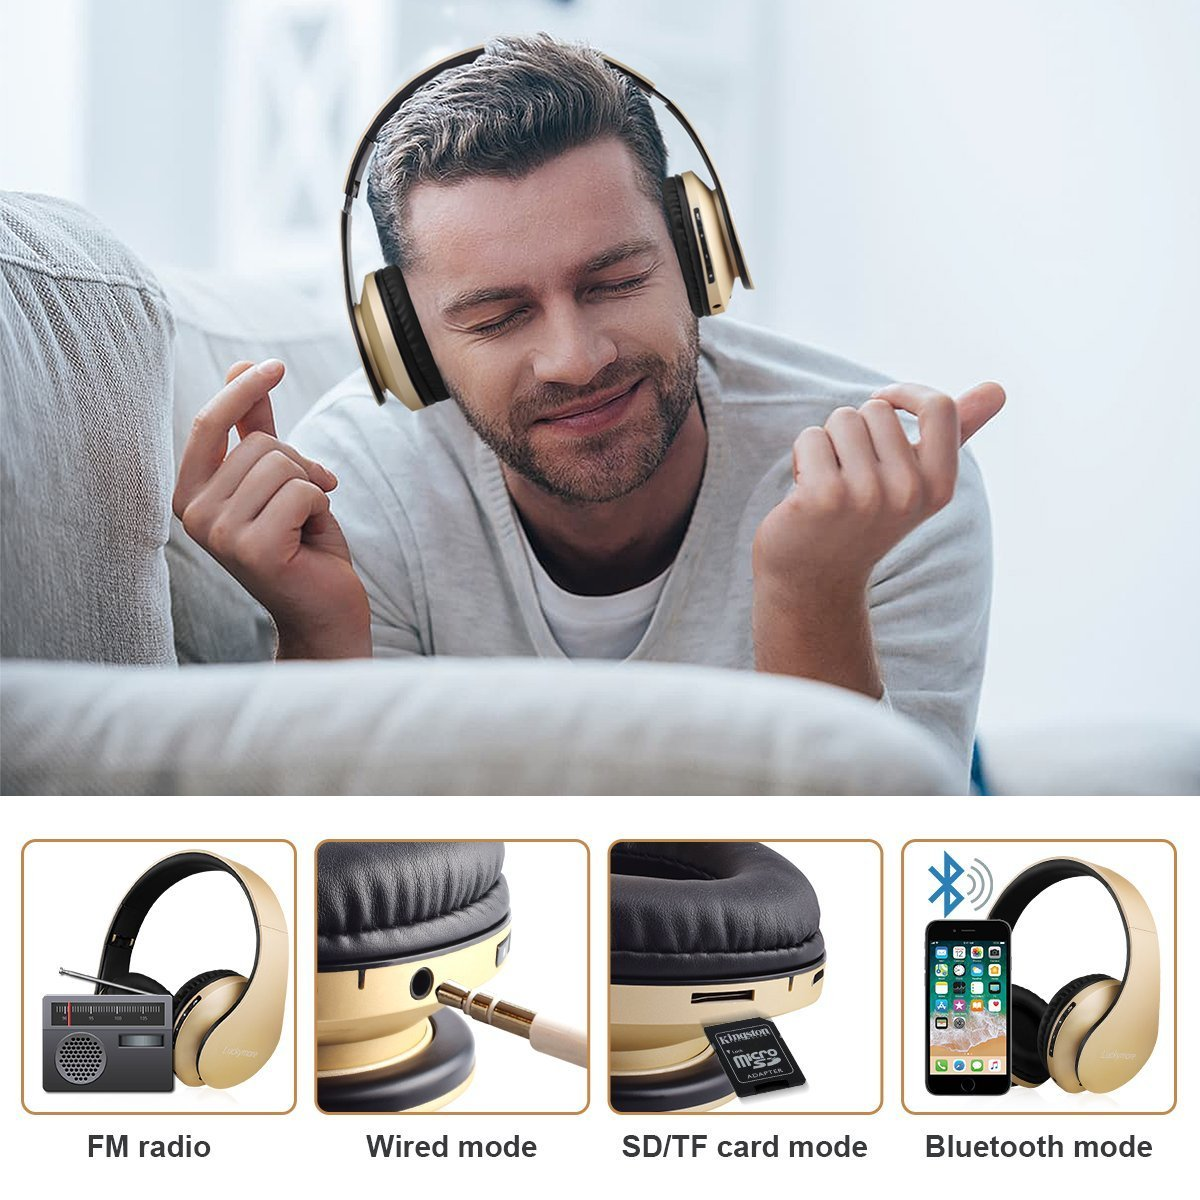 Bluetooth Auriculares Inalámbricos, Plegable Auriculares de Diadema Over Ear con Micrófono Libres Manos (Golden): Amazon.es: Electrónica